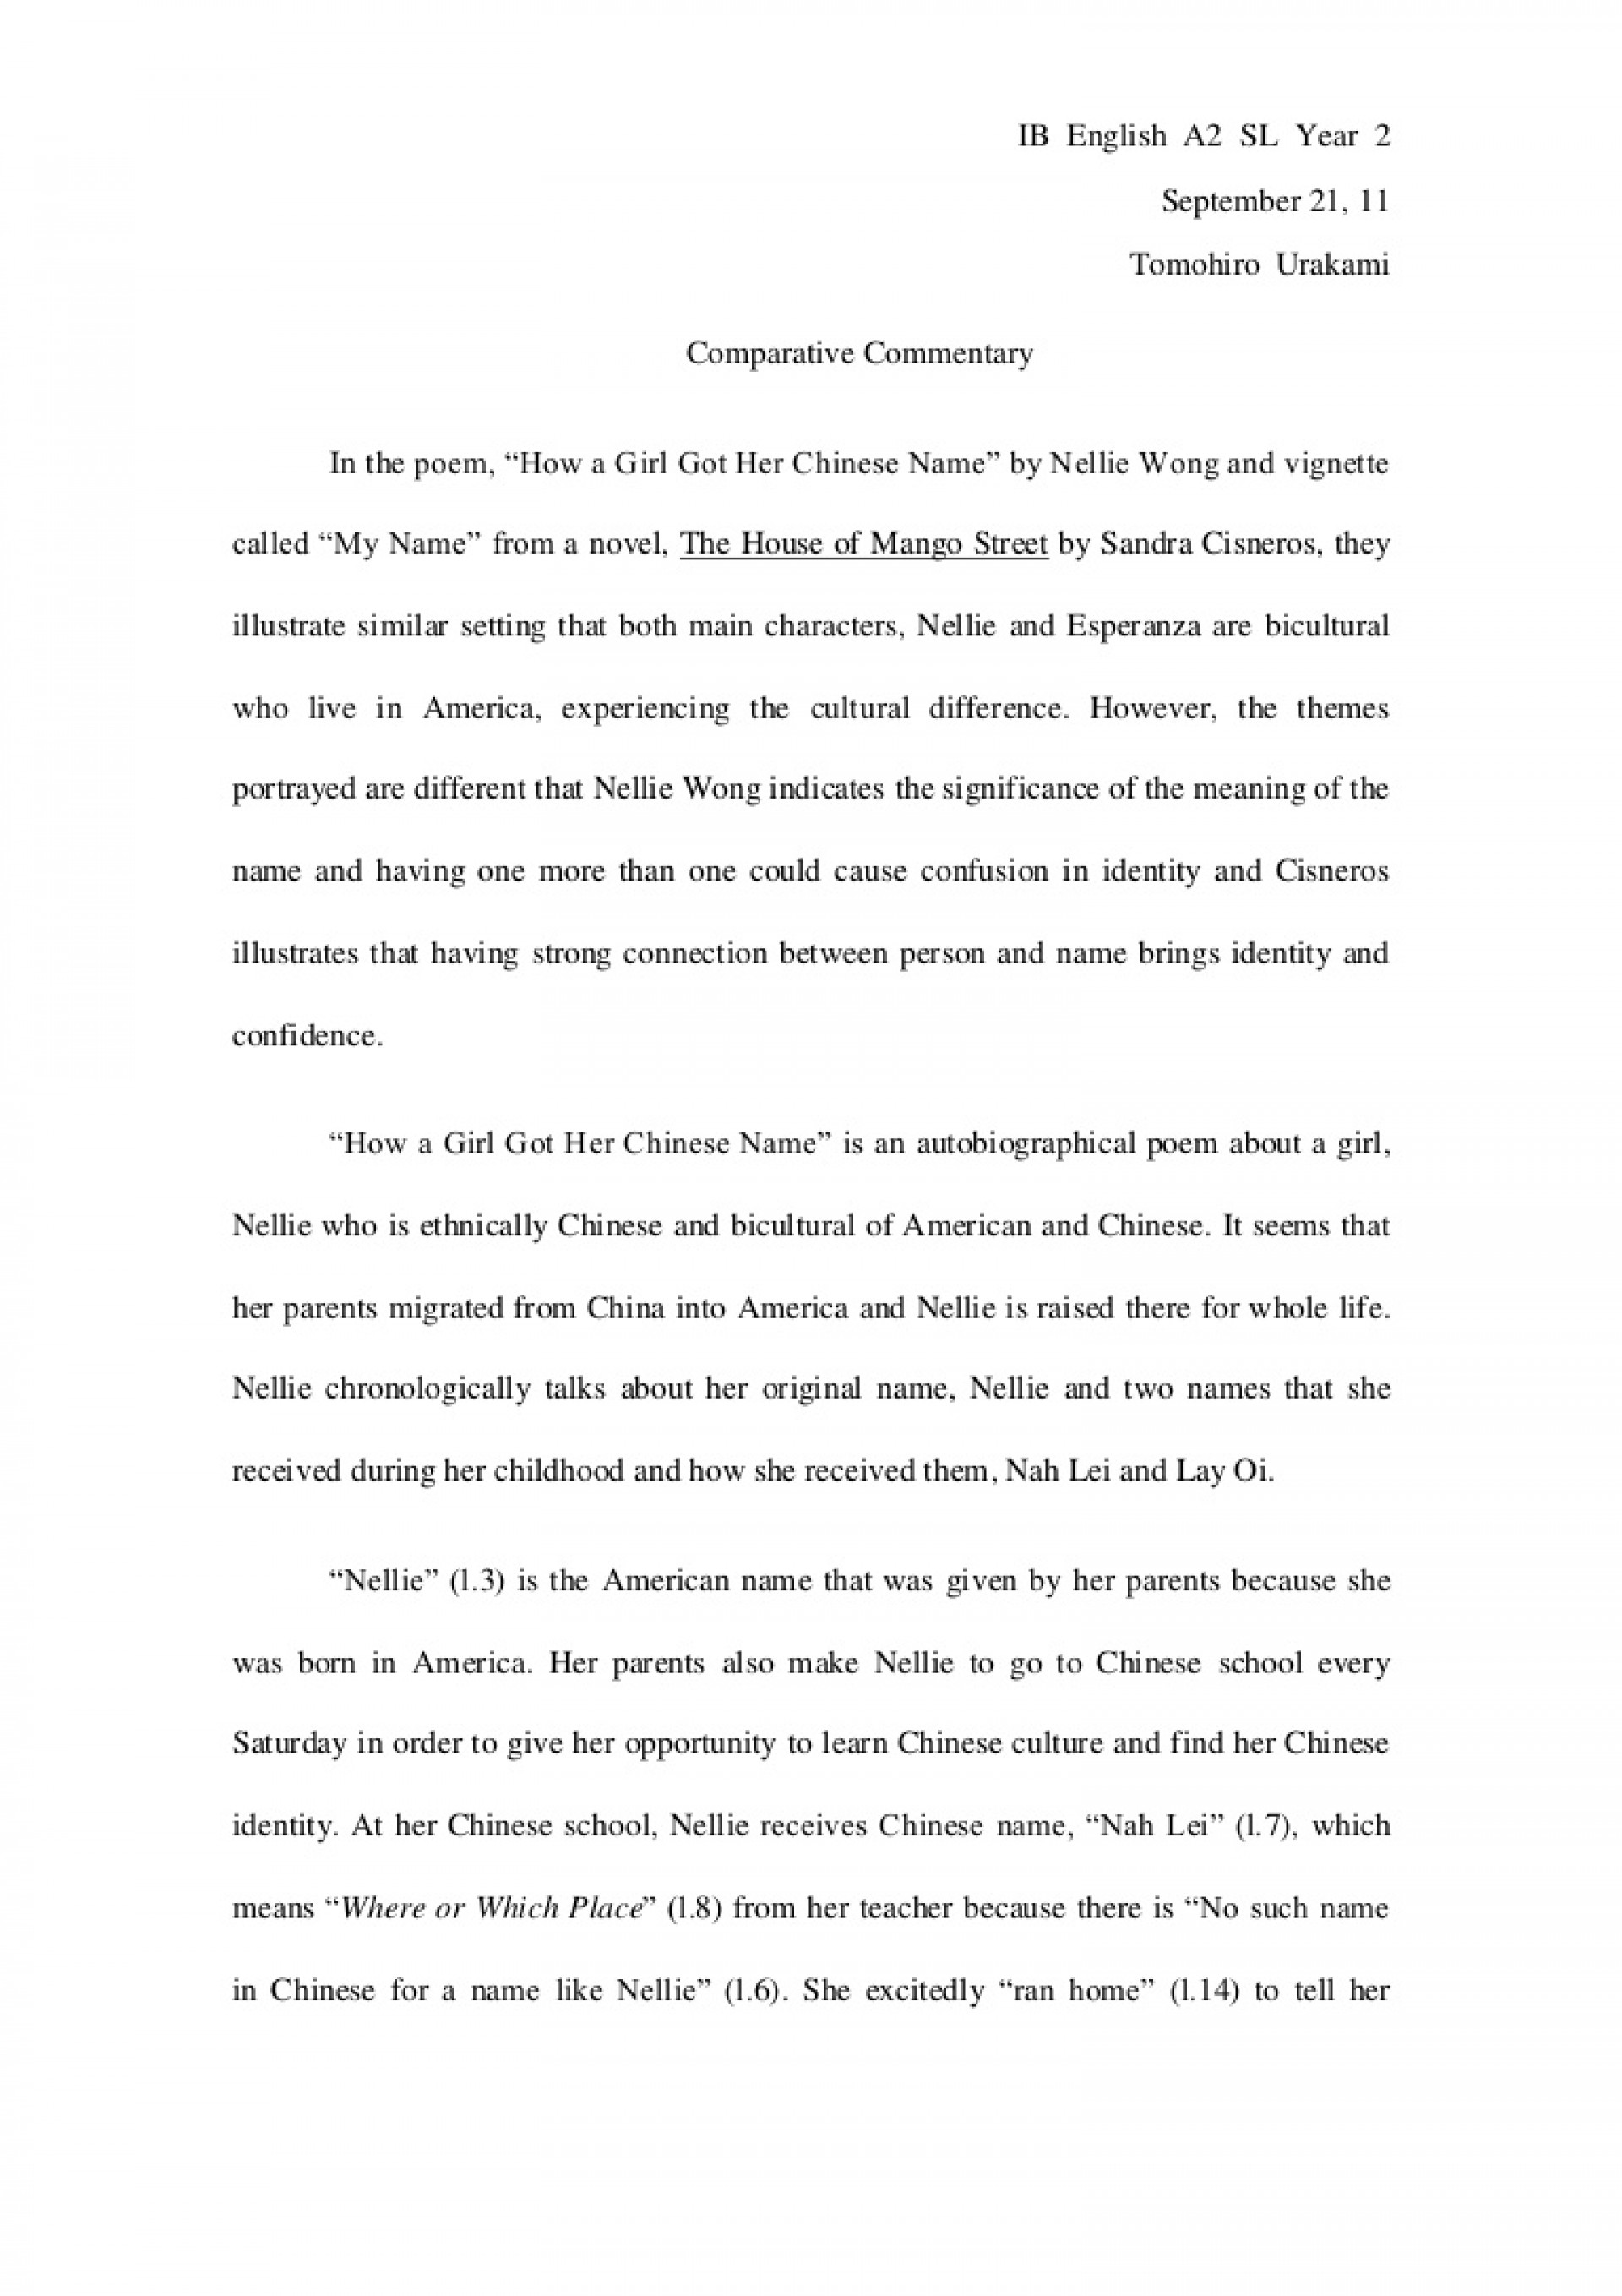 008 Compare And Contrast Essays Comparativeessaydraft Phpapp02 Thumbnail Magnificent Essay Examples 9th Grade For Elementary Students Topics 6th 1920